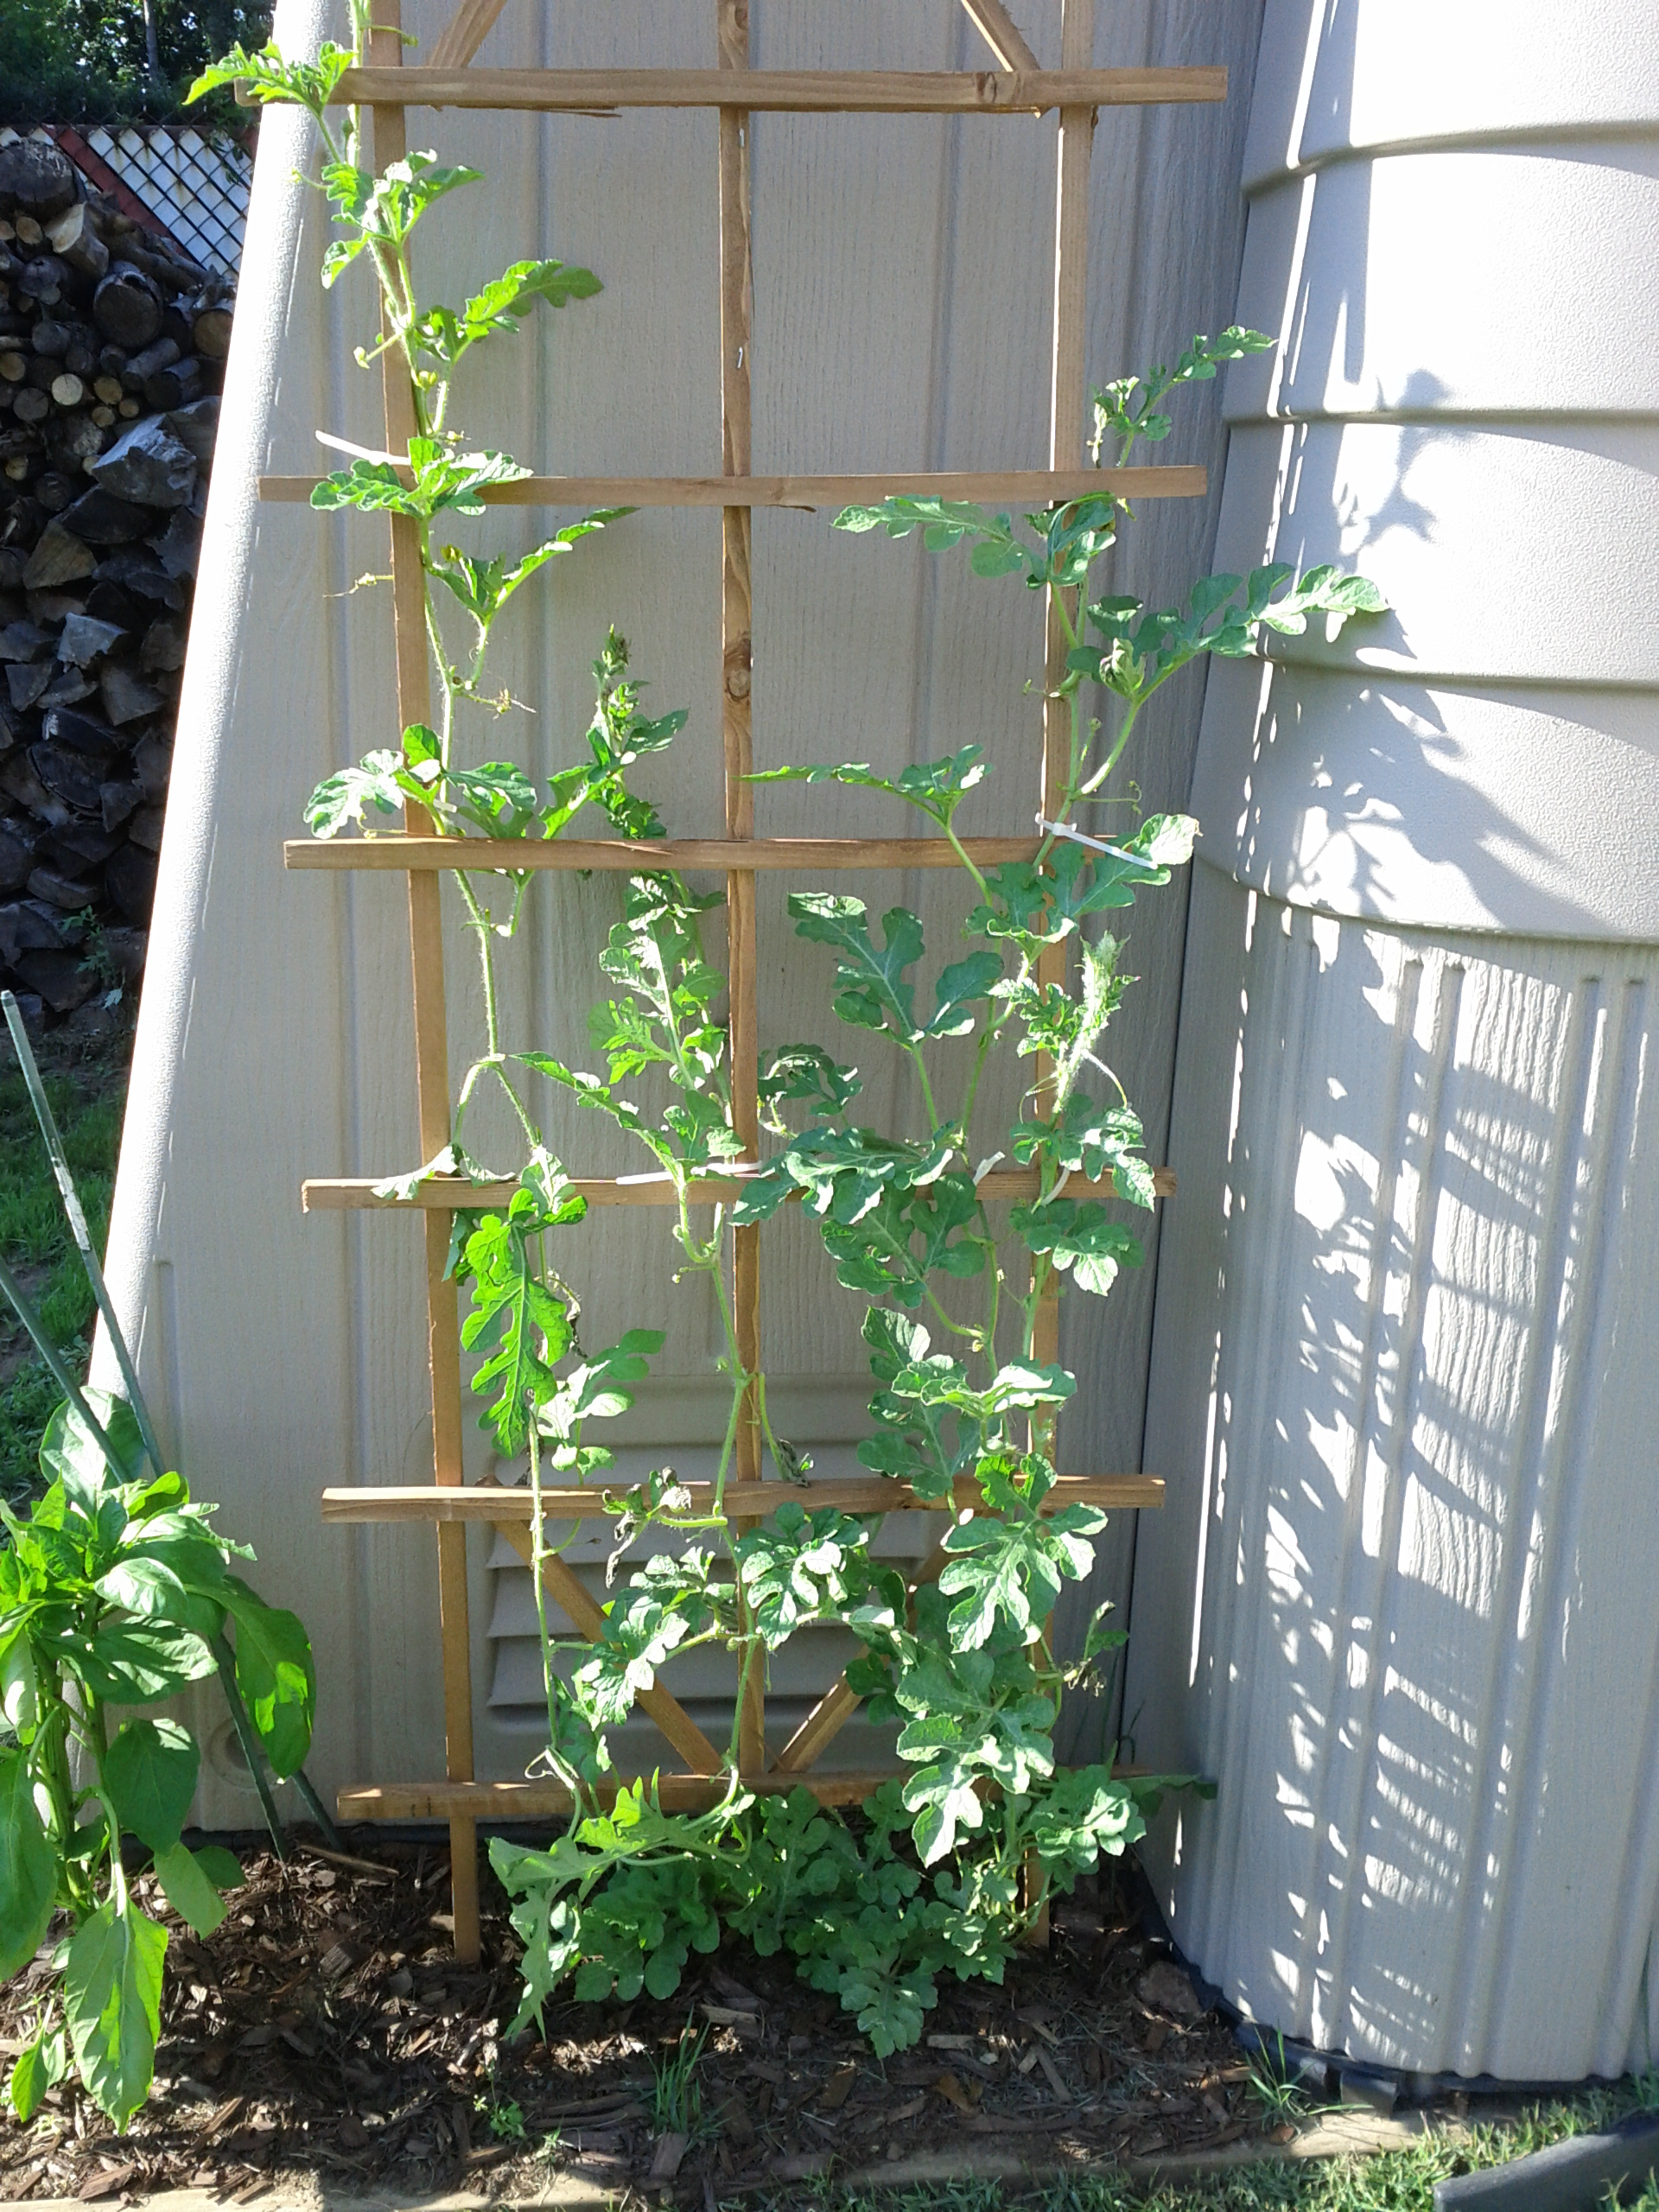 You need to know how to tie tomatoes in the greenhouse